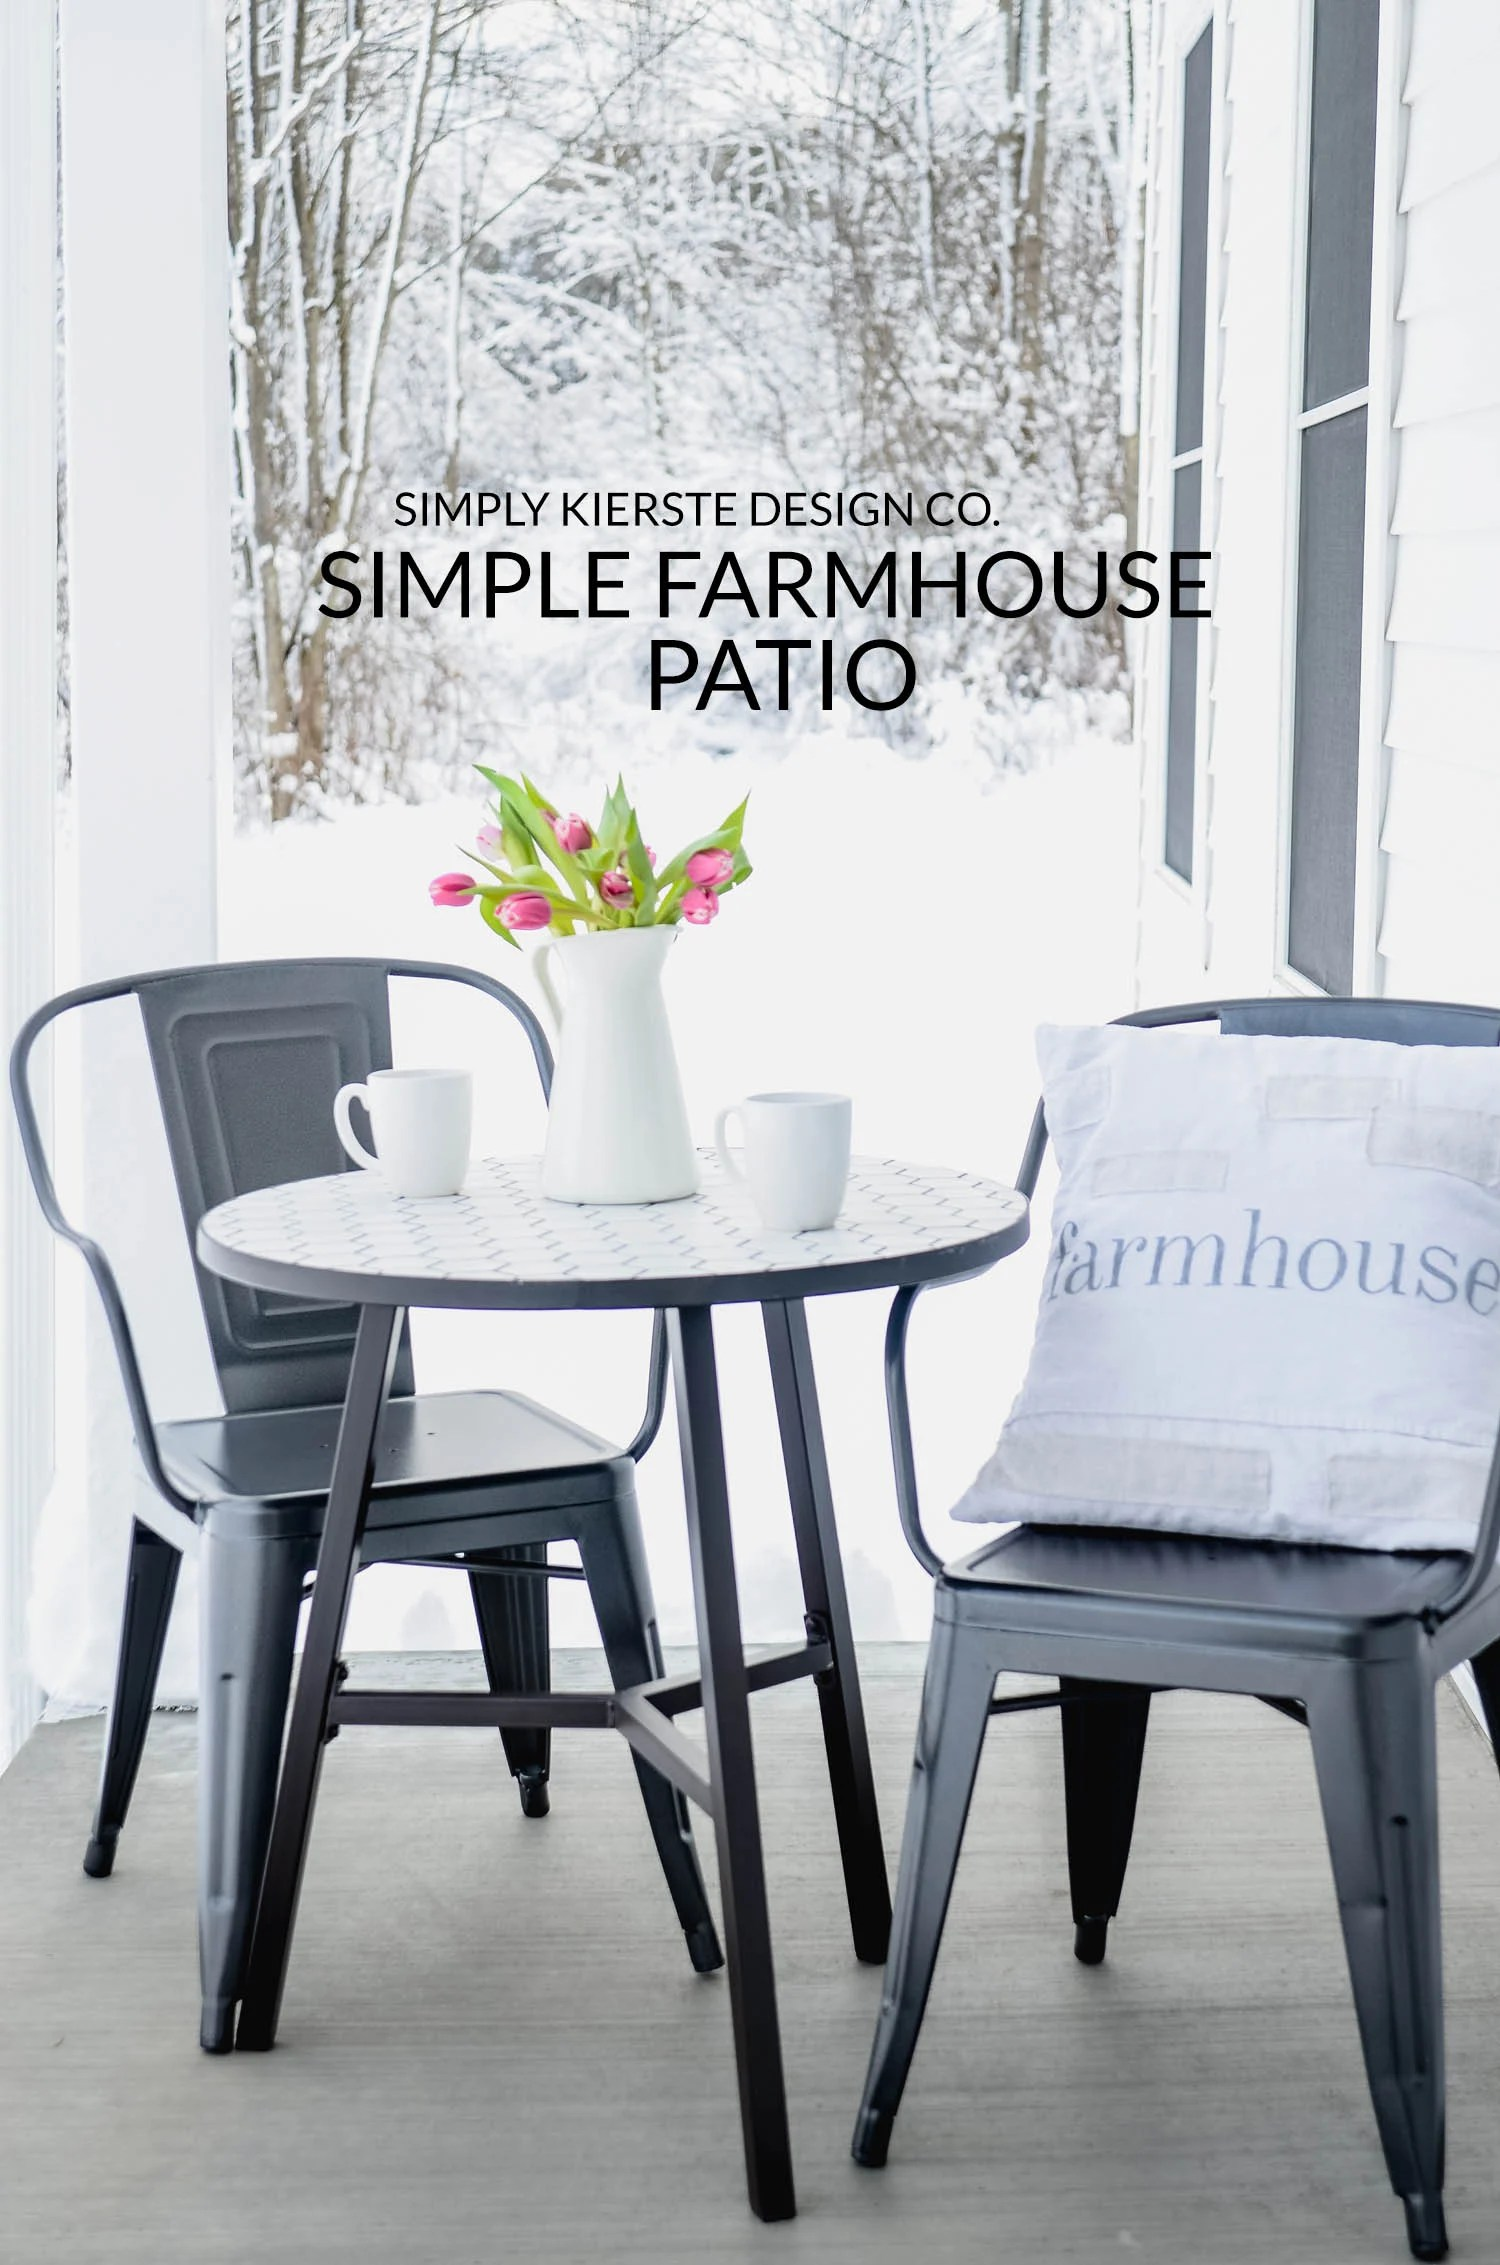 Simple Farmhouse Patio | Cozy Front Porch | oldsaltfarm.com #farmhouse #farmhousestyle #outdoorentertaining #patiofurniture